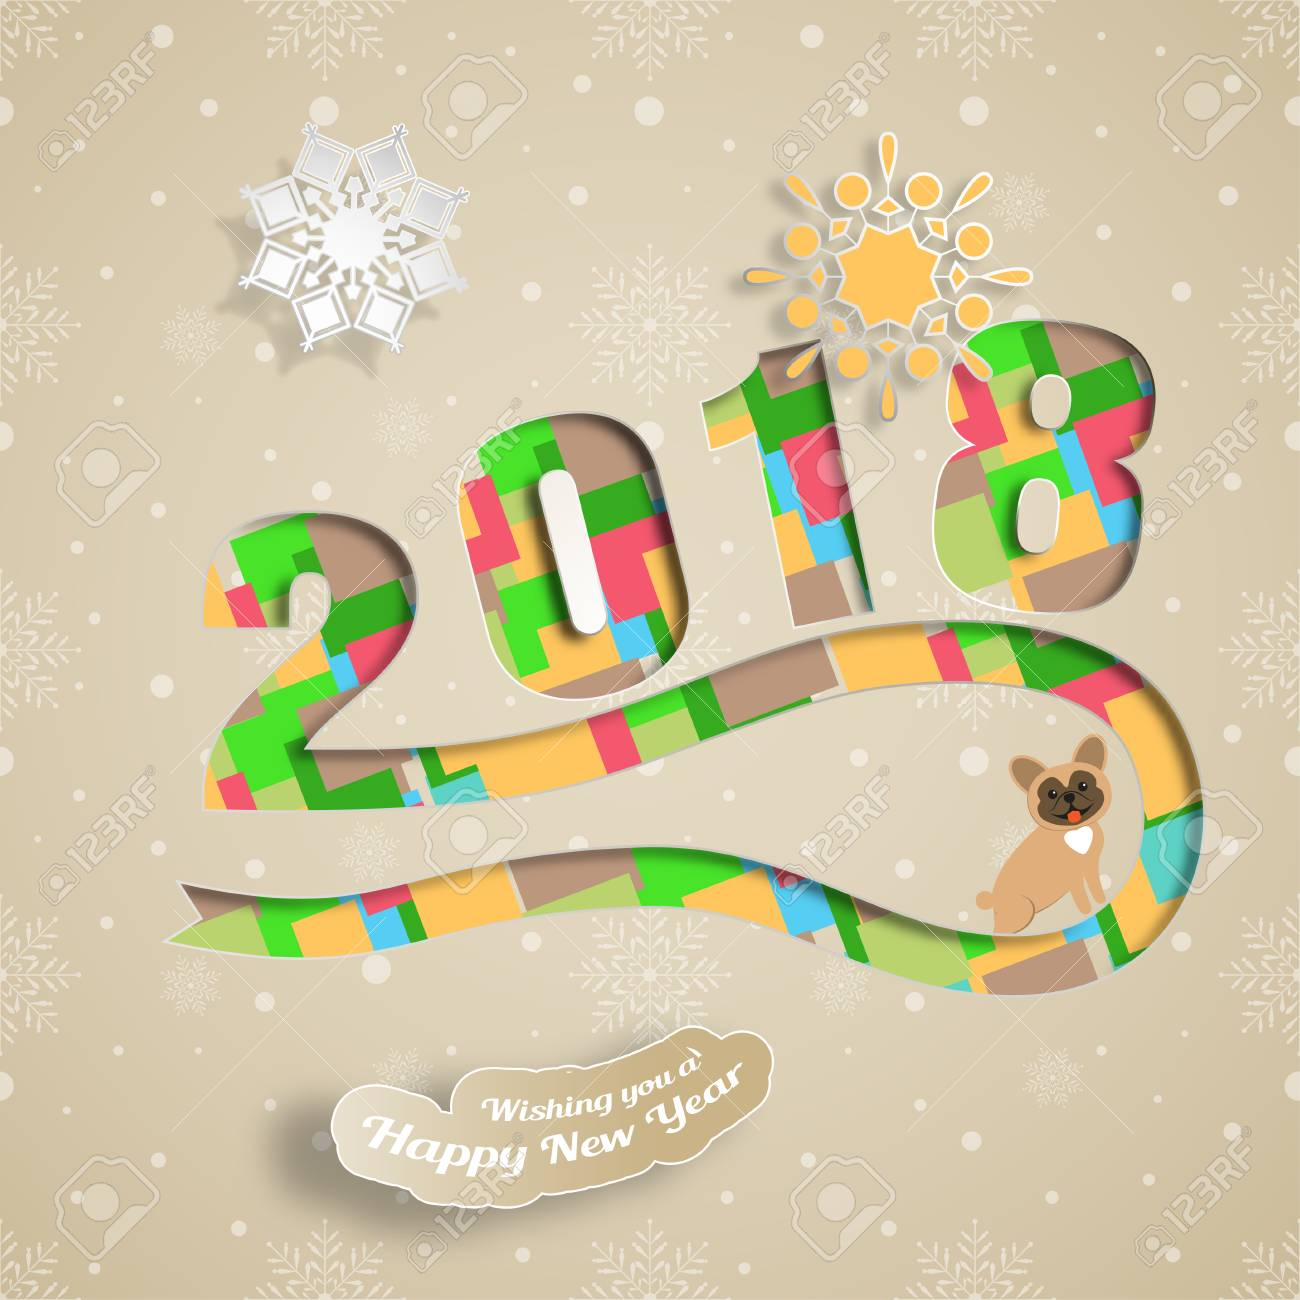 Vector Paper Art For Happy New Year With Snowflake Dog Text